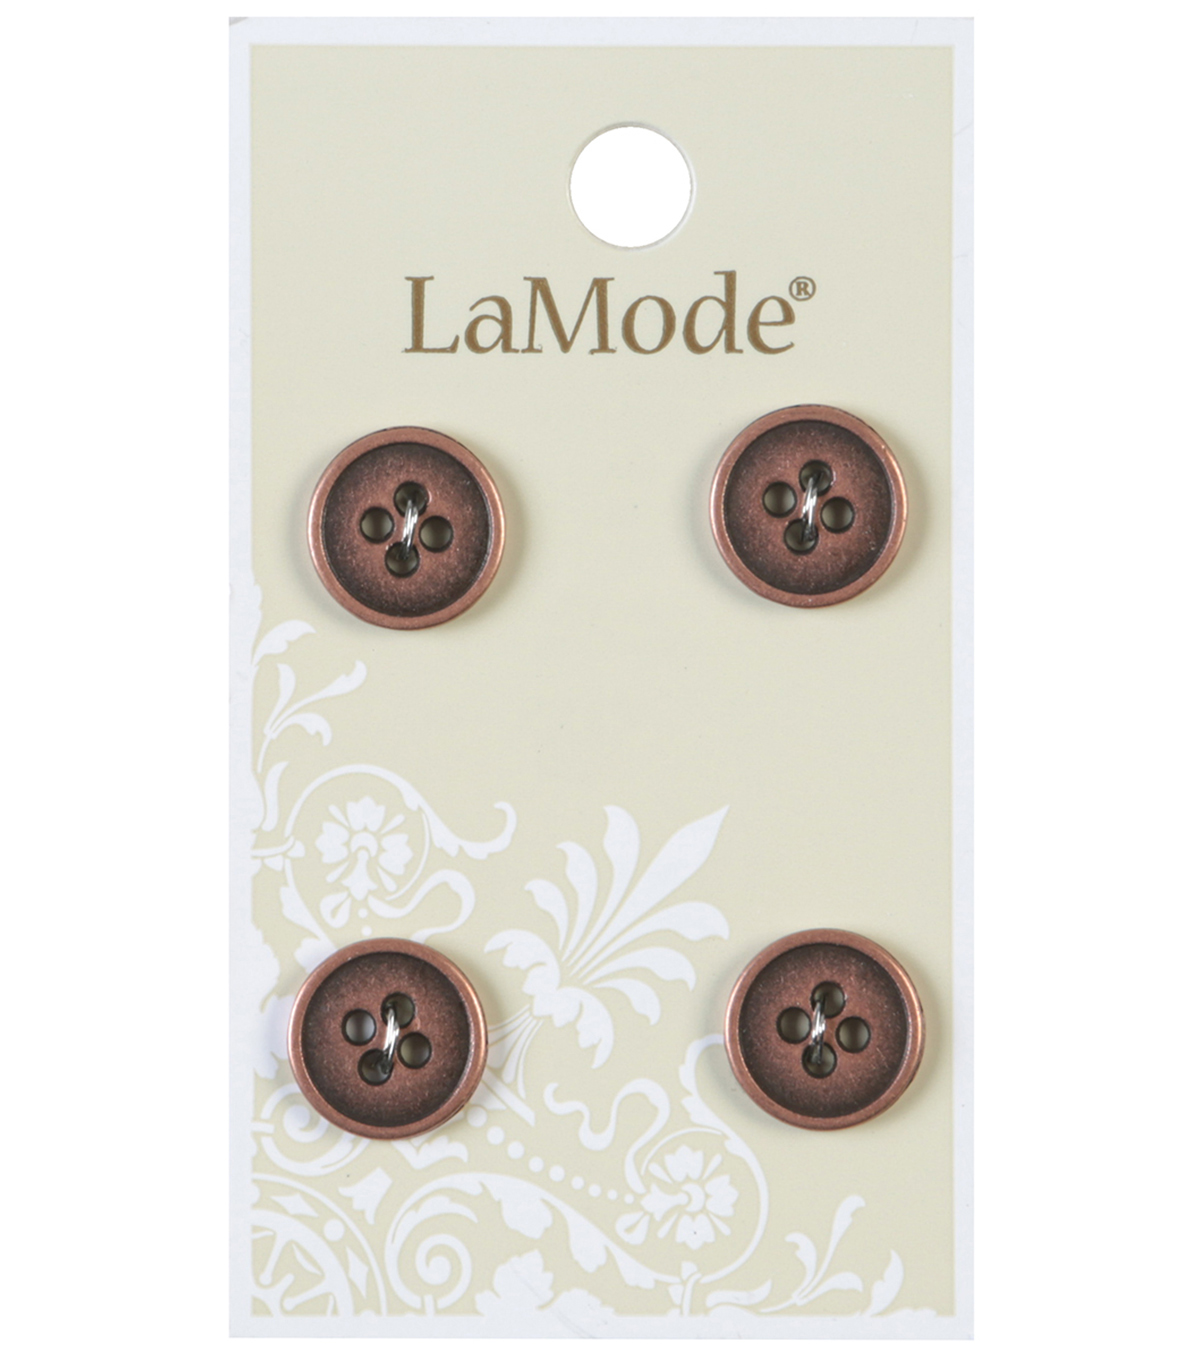 LaMode 4 Hole Antique Copper Metal Buttons 12mm